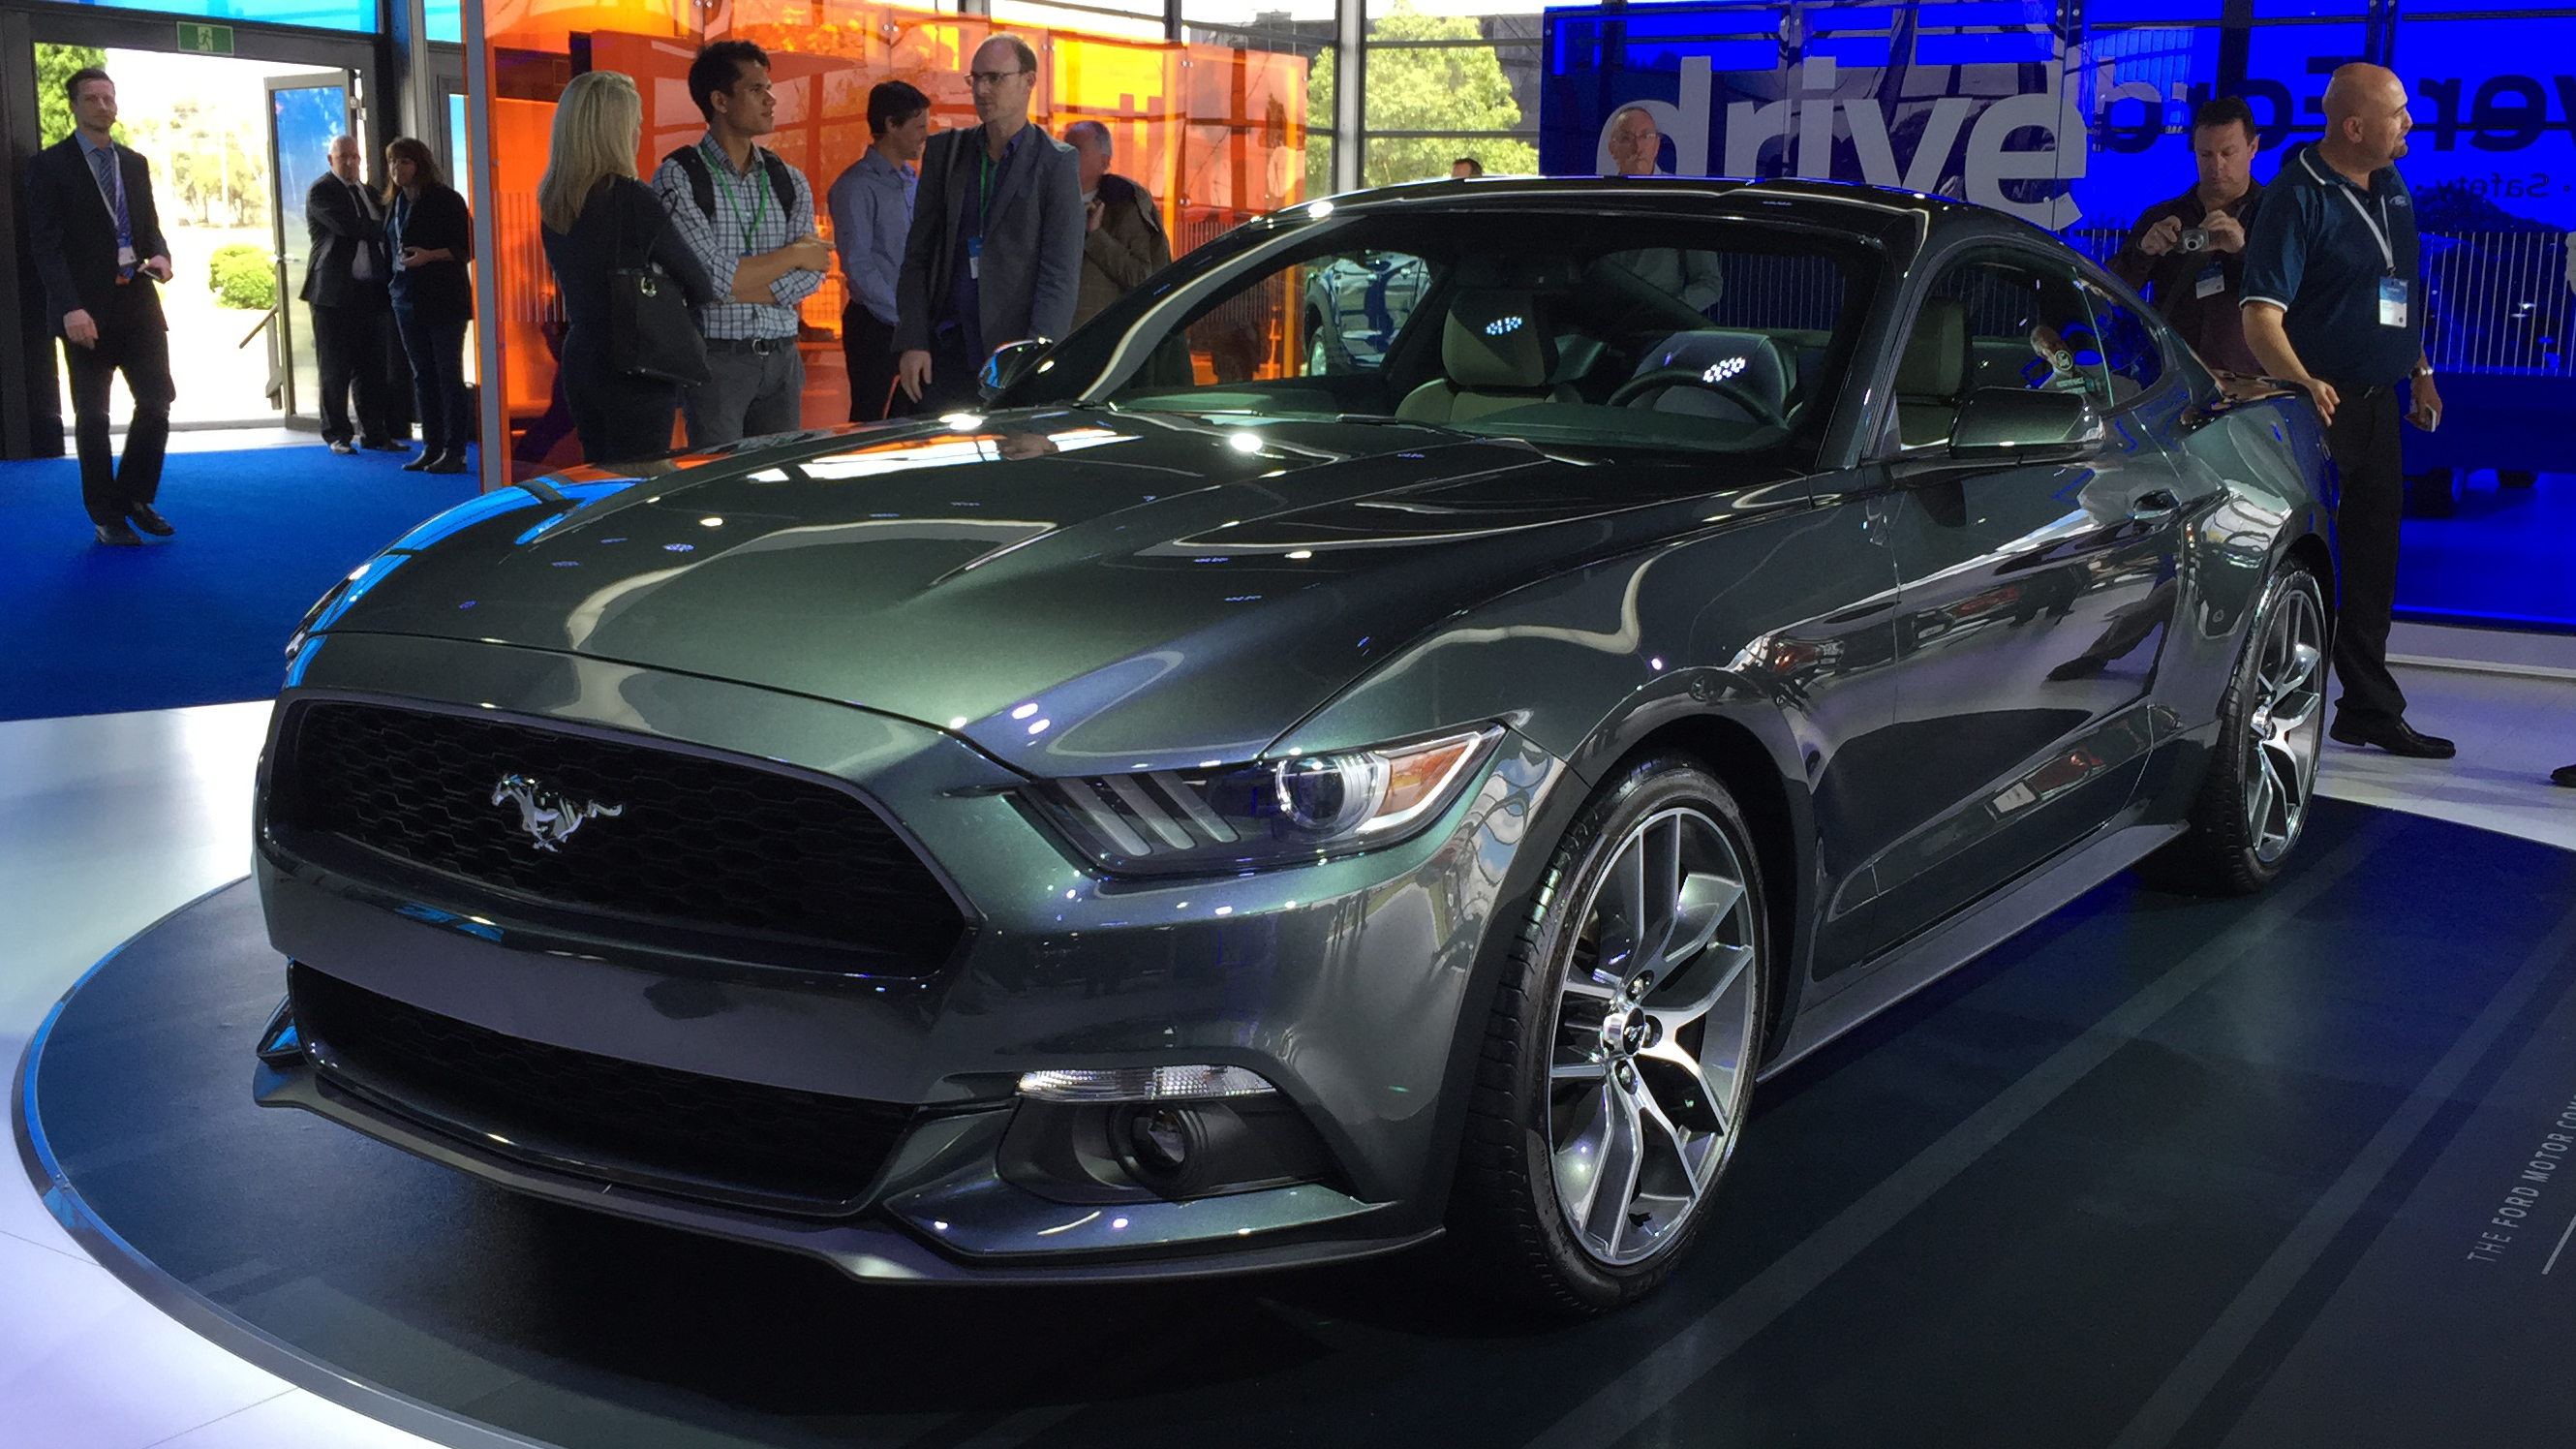 Aussie ford mustang to match us counterparts power